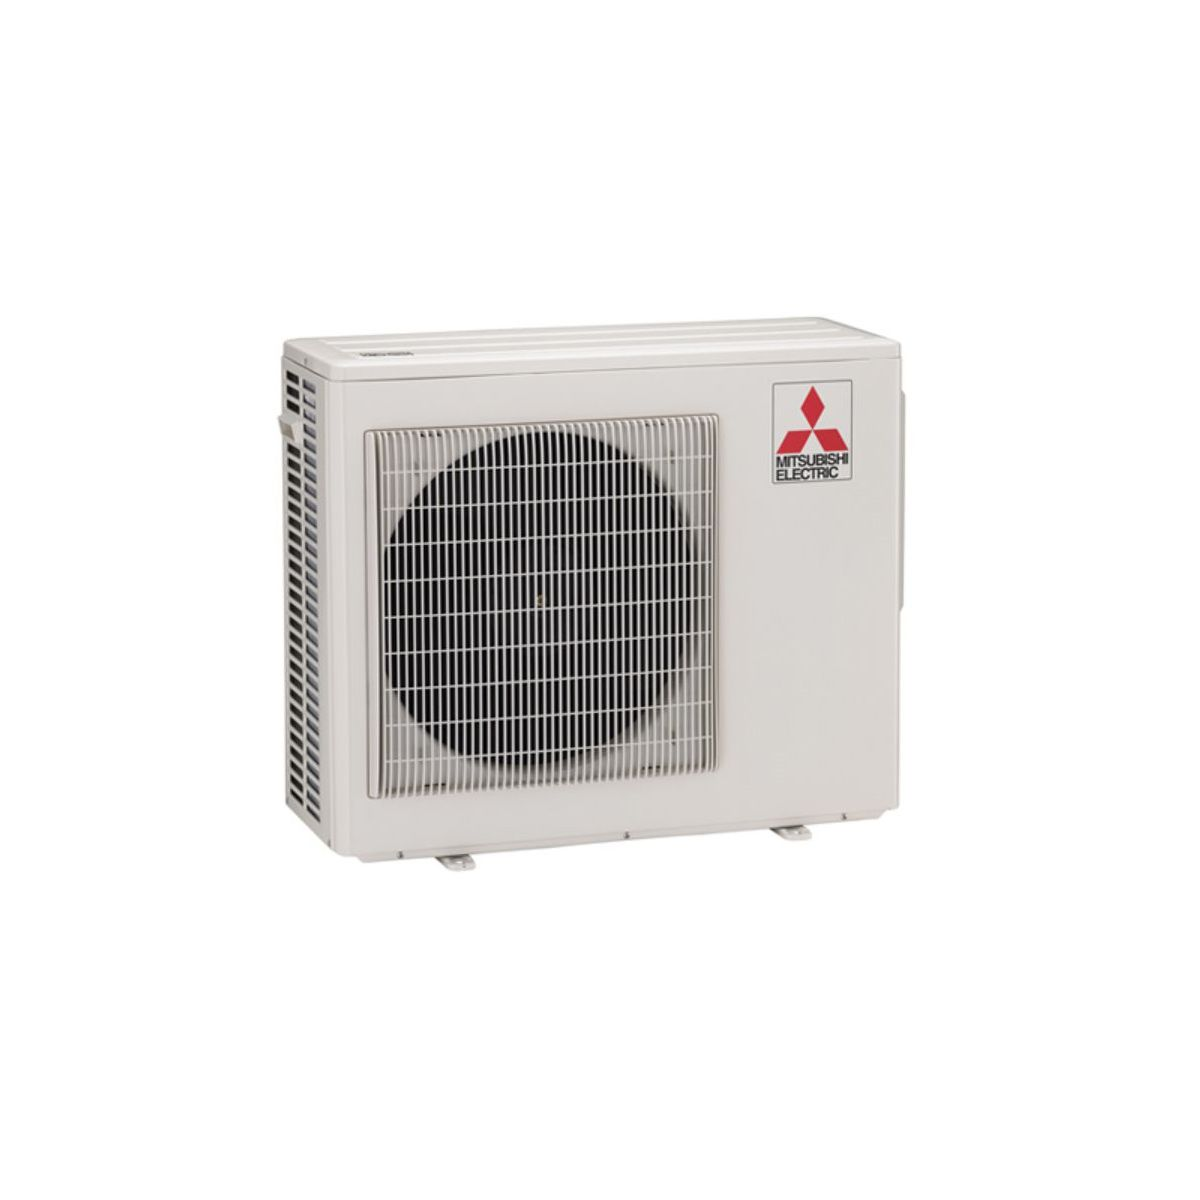 Mitsubishi Ductless Mitsubishi Ductless M Series 20000 Btu Heat Pump 2 Zone 208 230 1